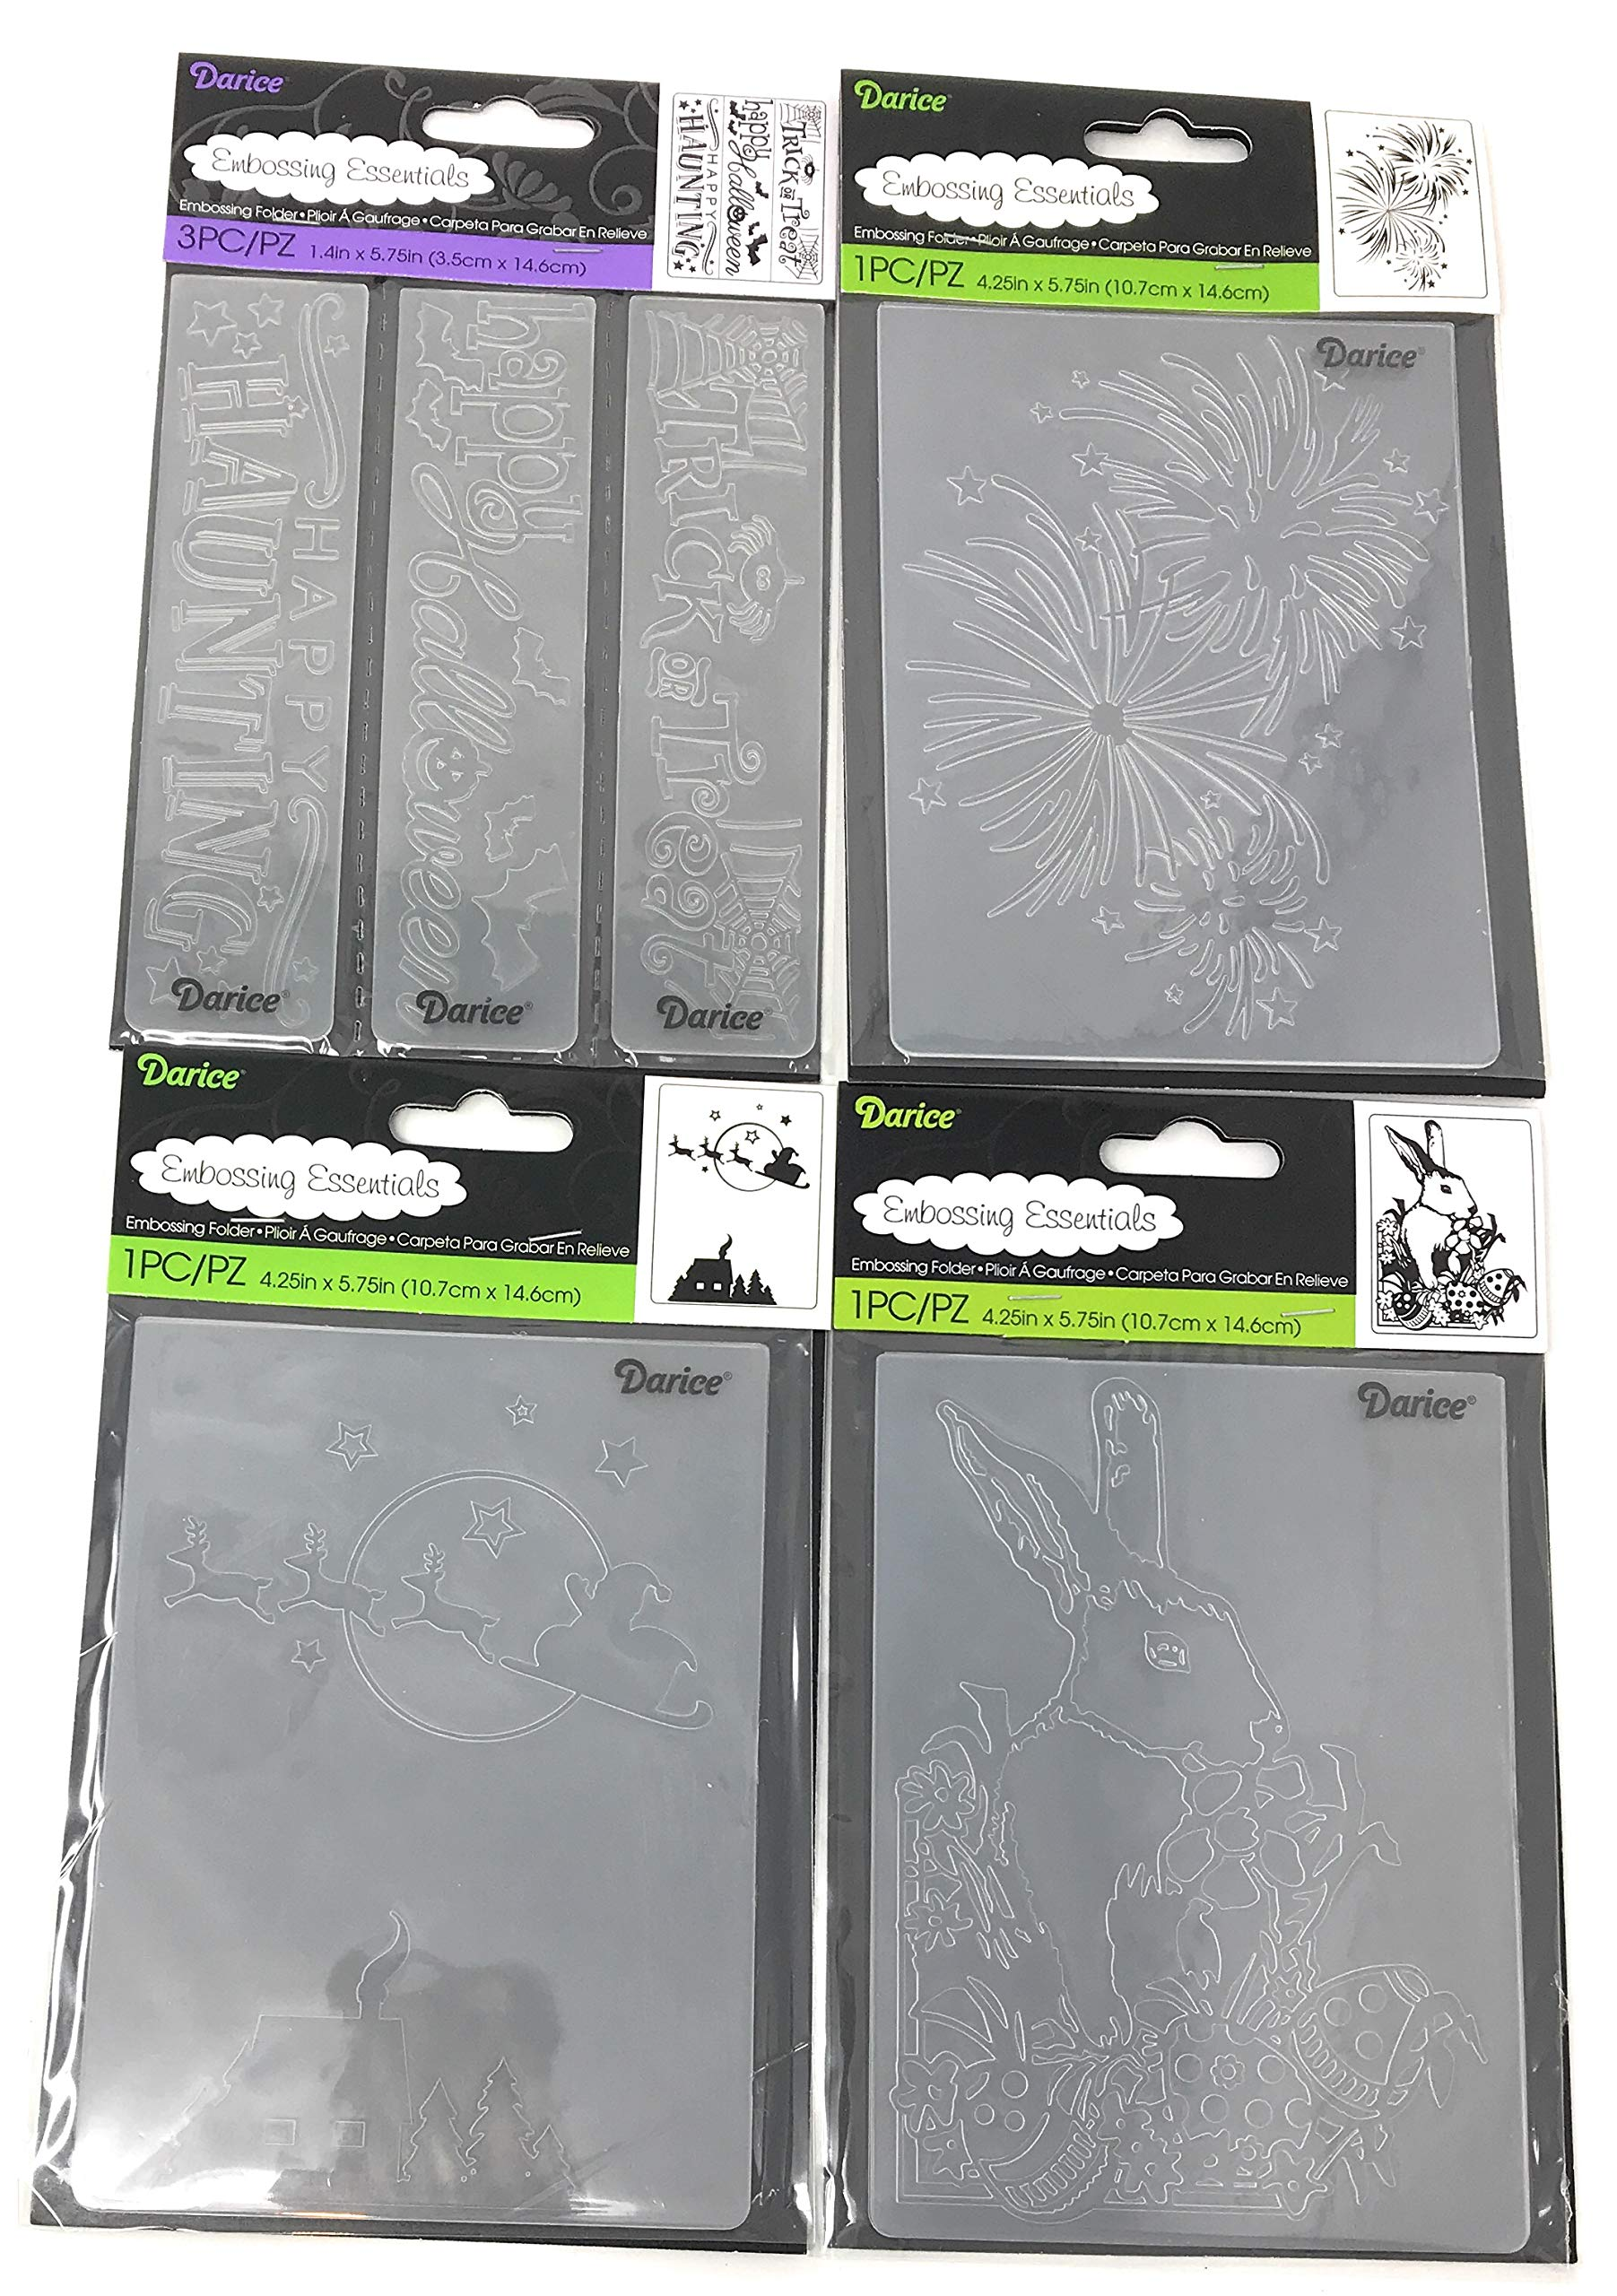 Darice Embossing Folder Borders Holiday Bundle: Christmas, Halloween, 4th of July and Easter, Each 1.4'' x 5.75'' or 4.25'' x 5.75'' (6 Items)